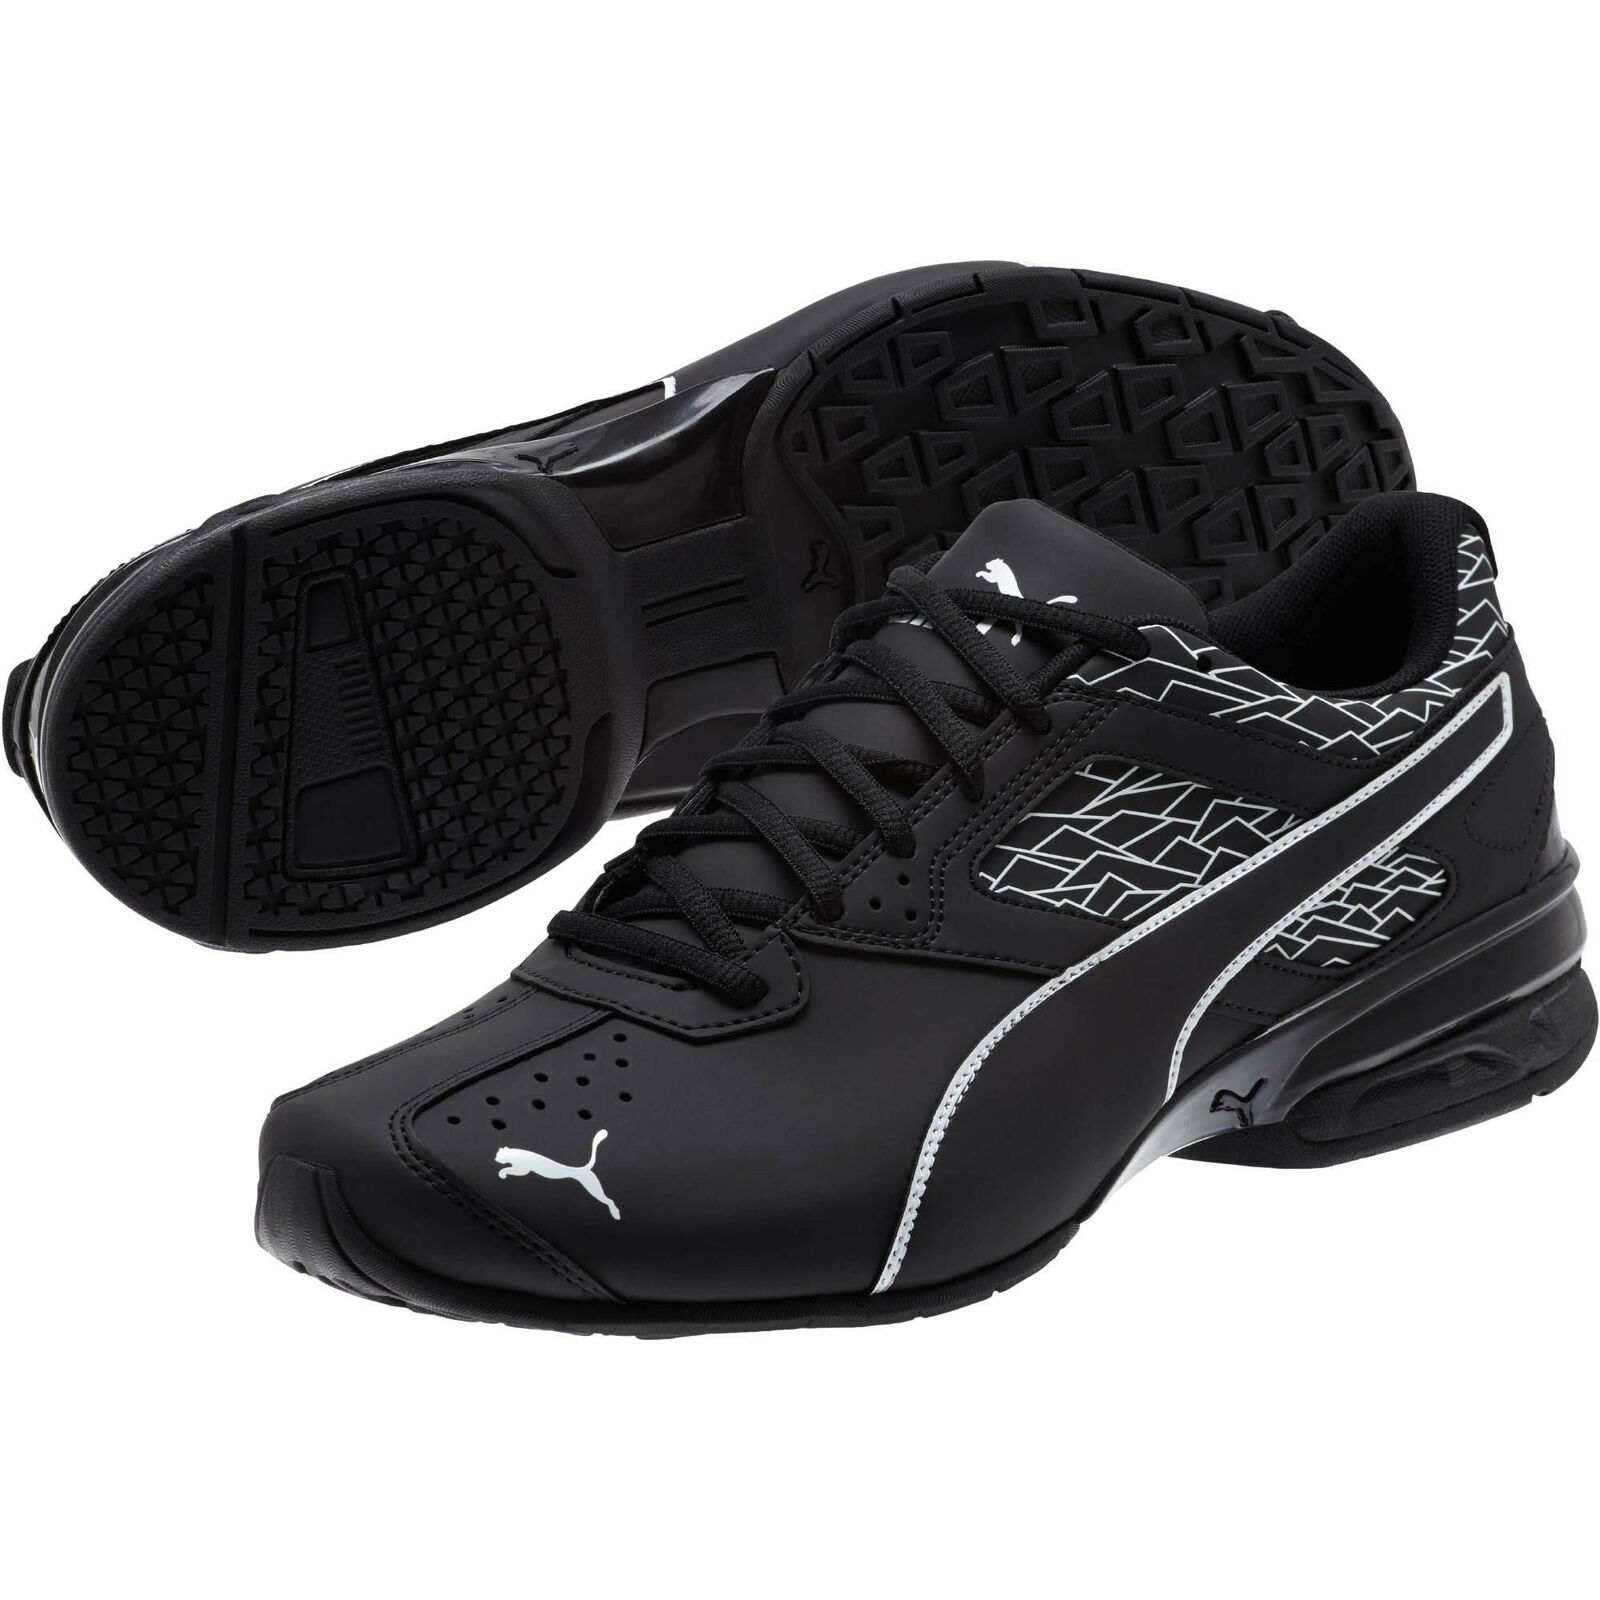 PUMA Tazon 6 Fracture FM Men's Sneakers Men Shoe Running